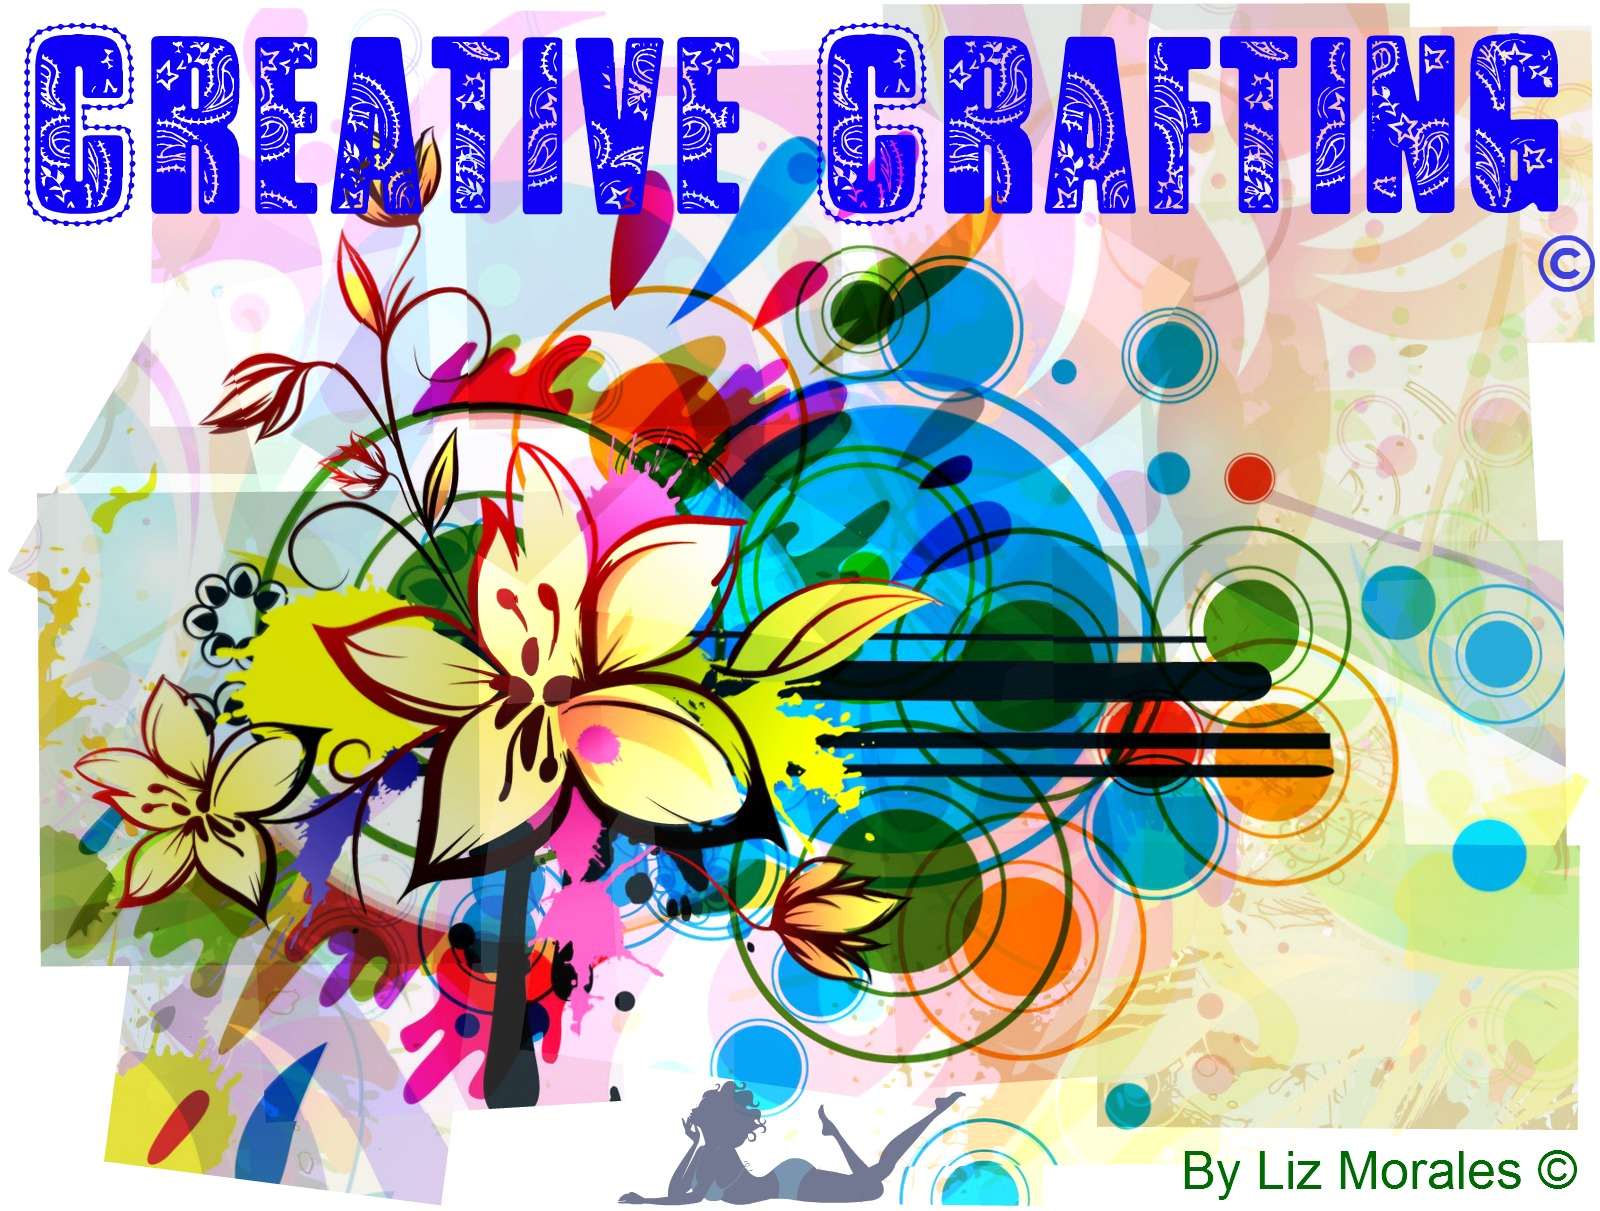 Creative Crafting!